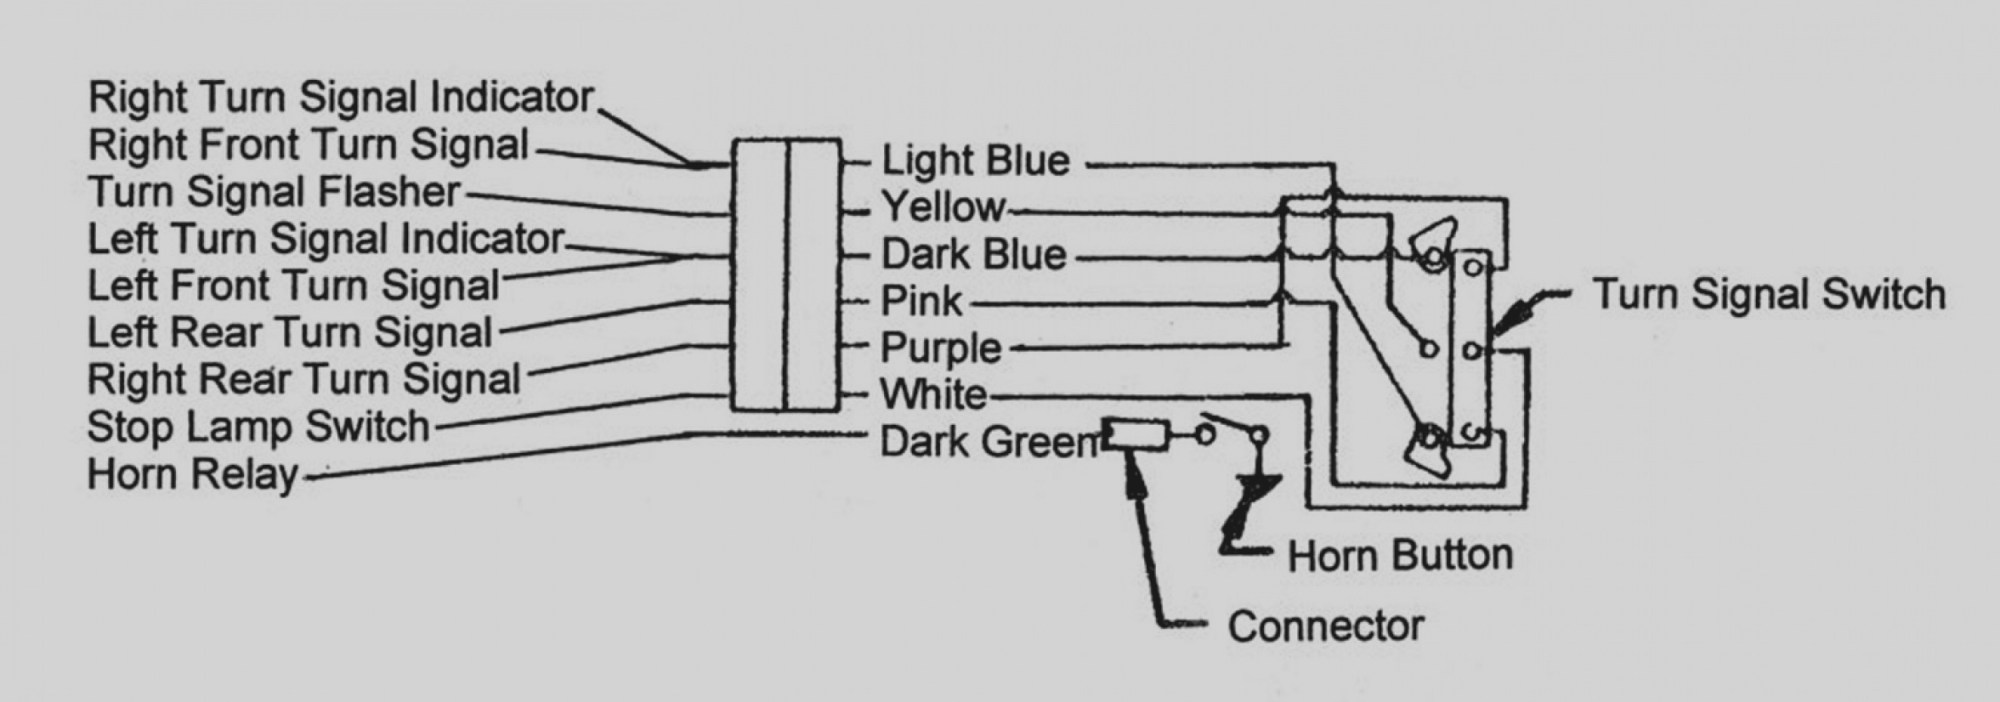 hight resolution of ground wiring schematic for 55 chevy wiring diagram centre 55 chevy ididit wiring diagram wiring diagram